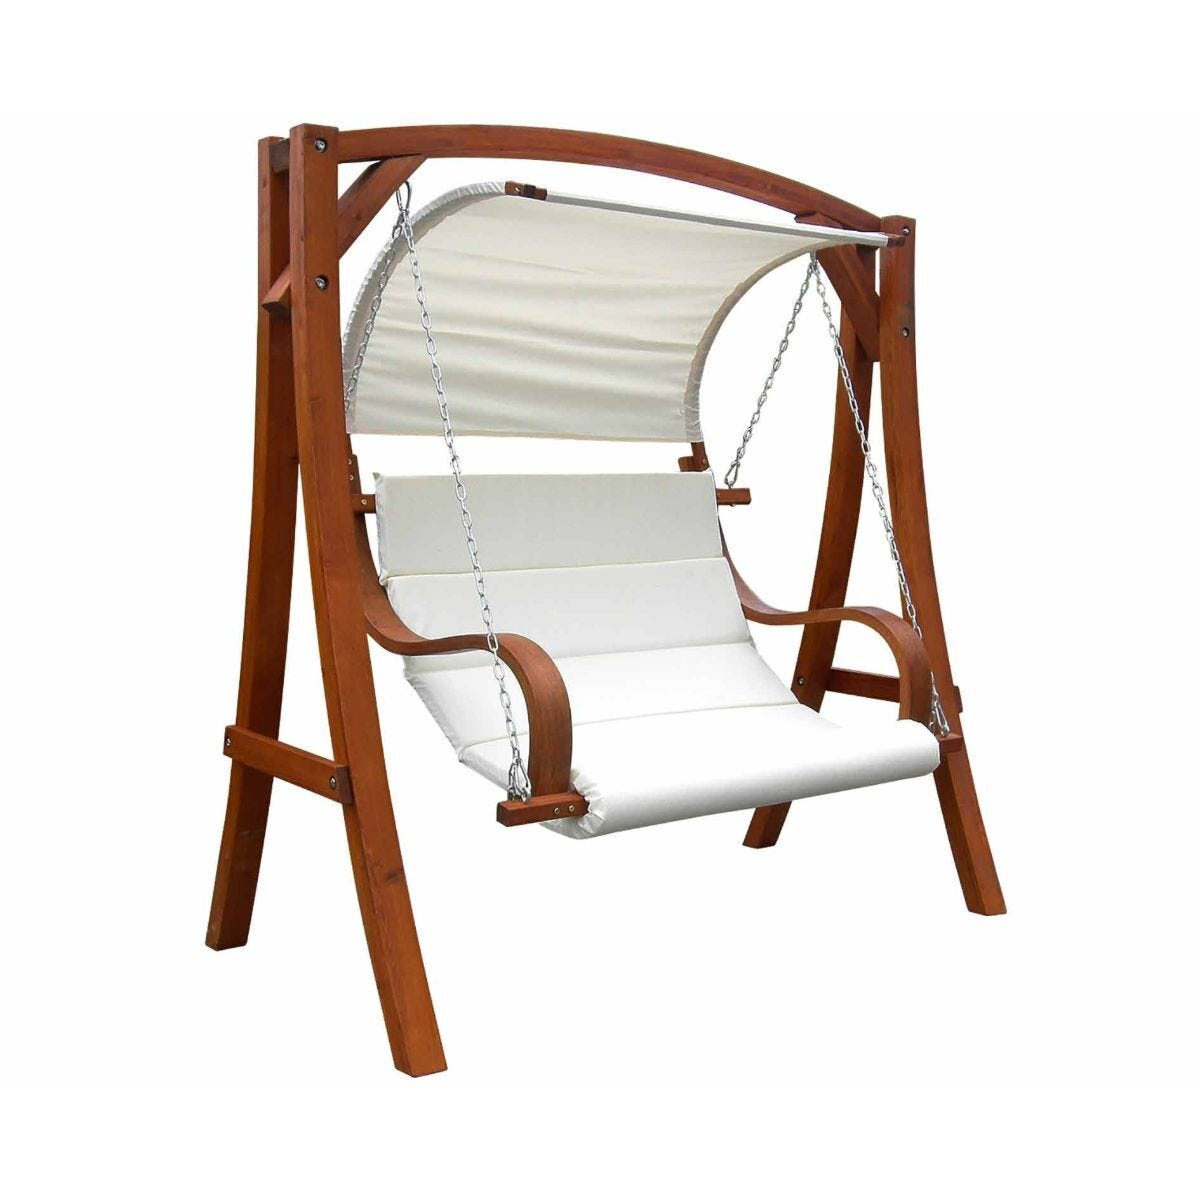 Charles Bentley Wooden Garden Swing Seat With Canopy And Cushions